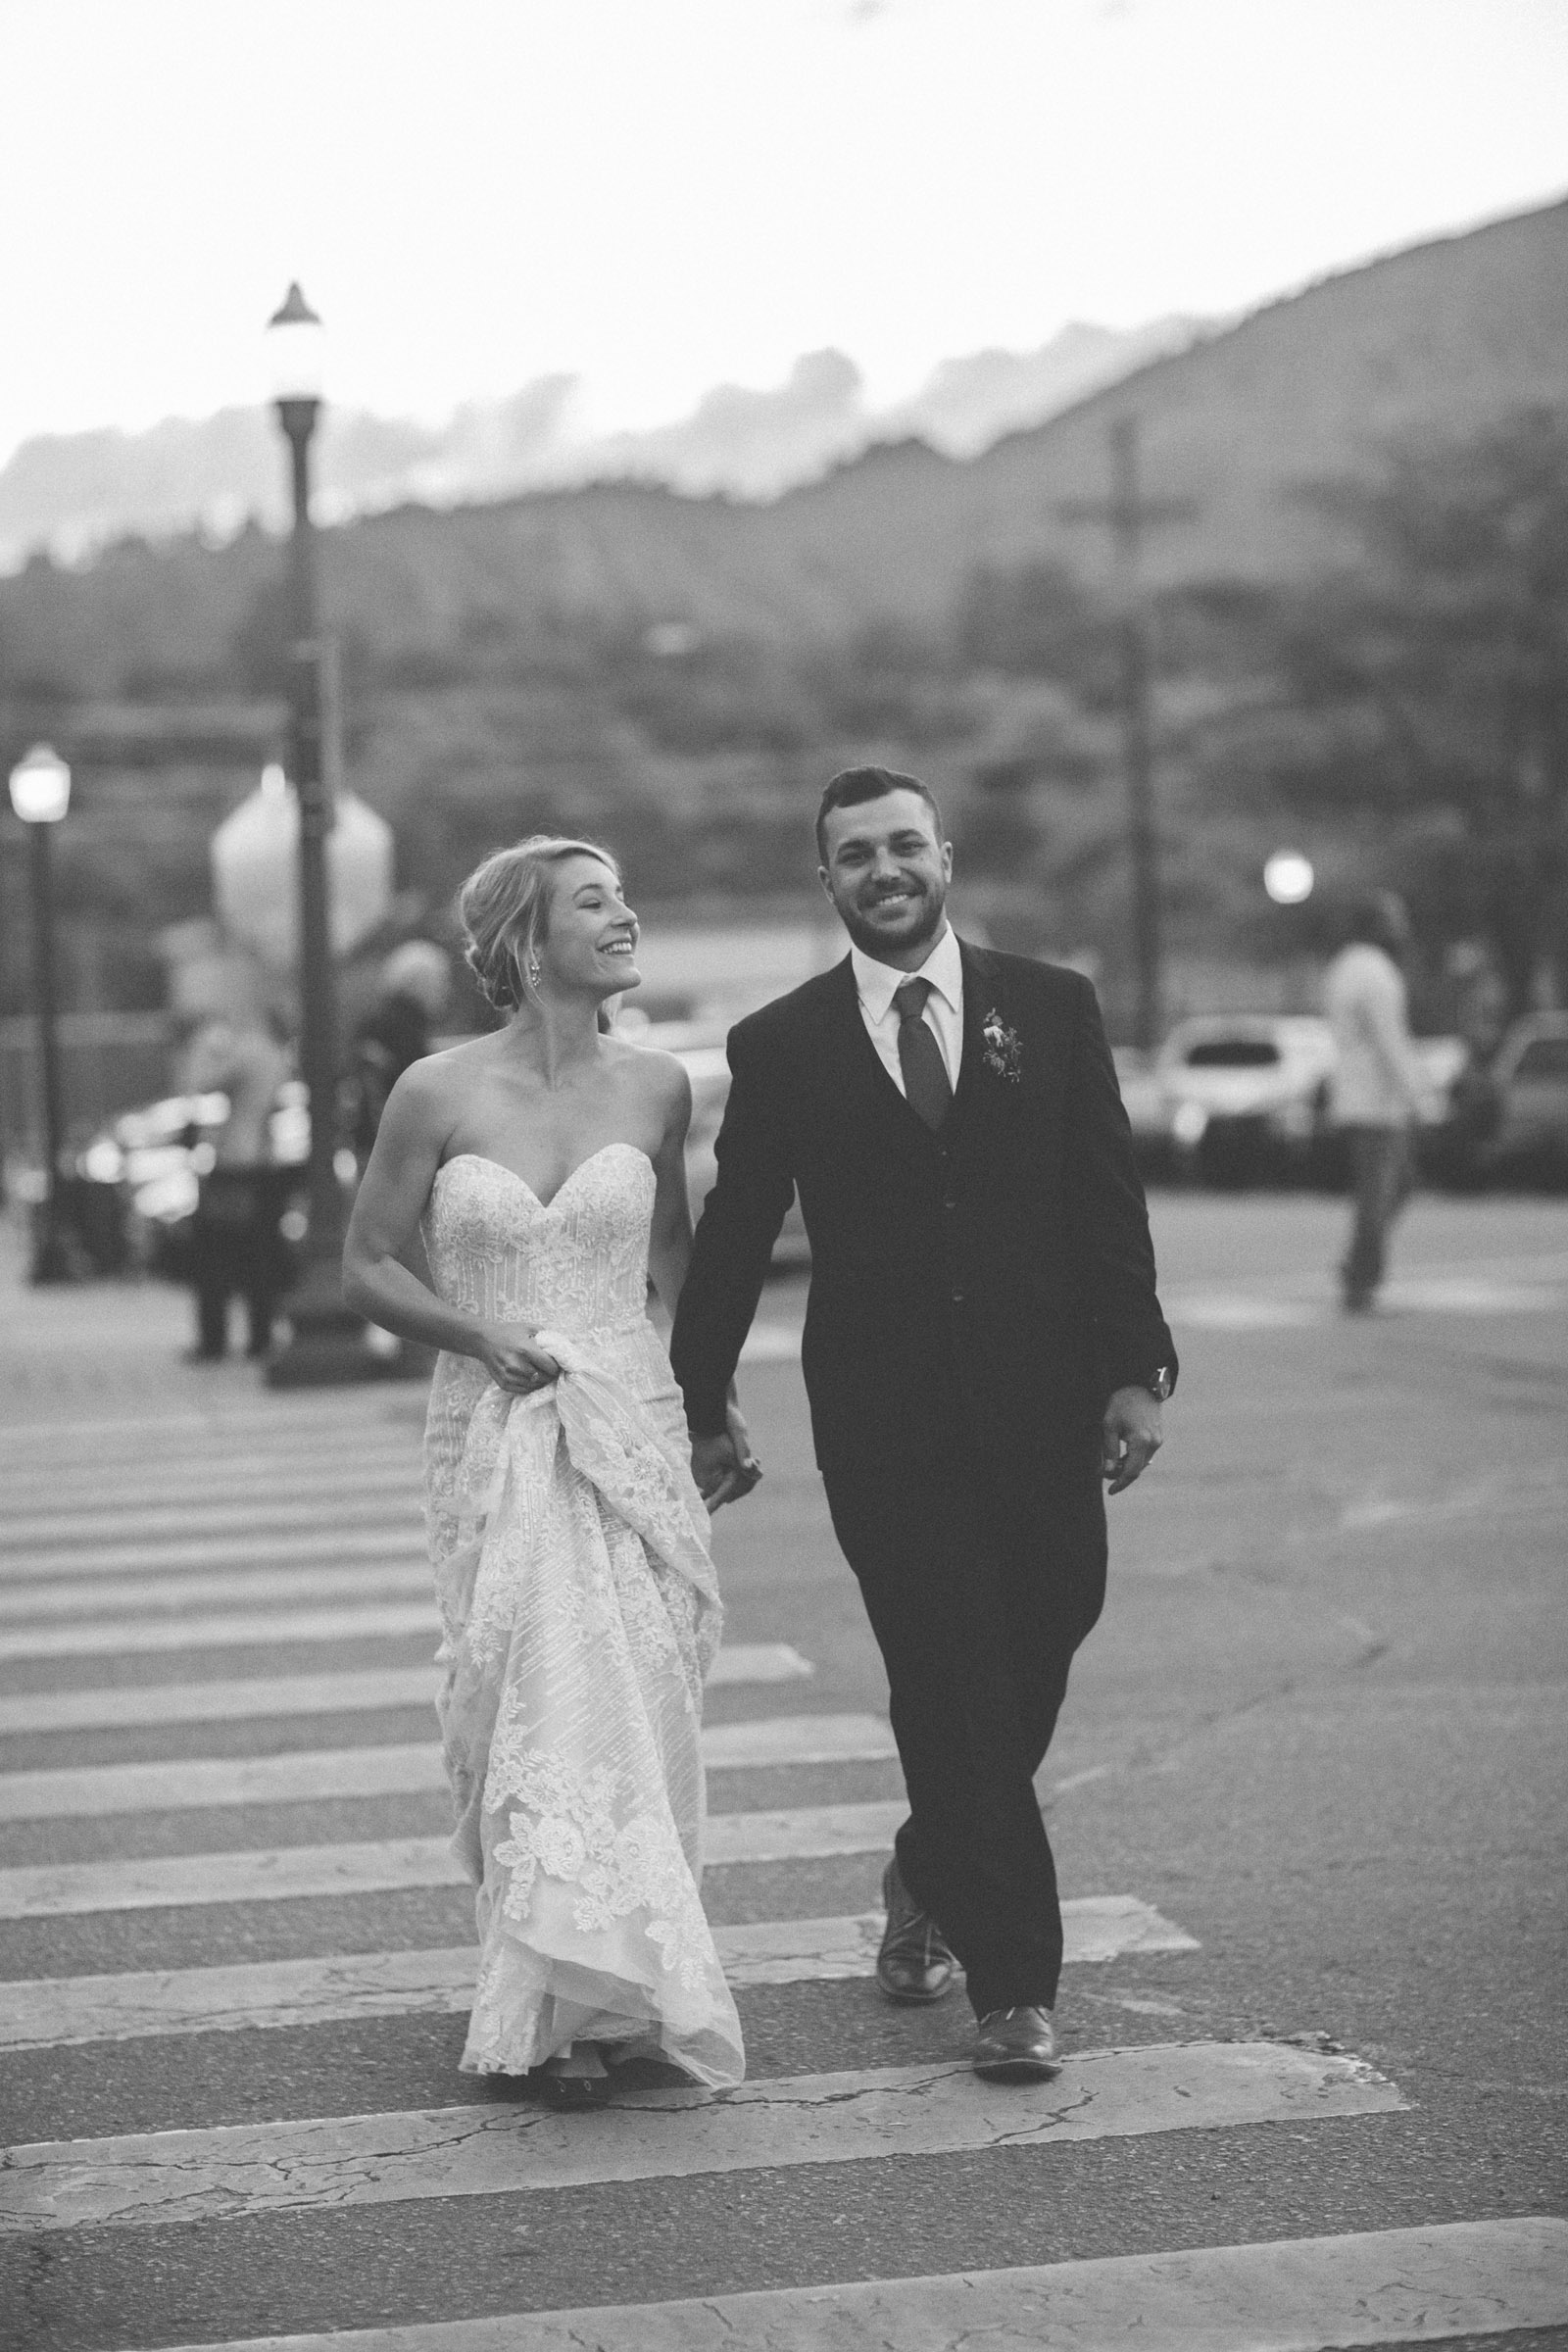 190-beautiful-bride-and-groom-photojournalist-portraits-at-elopement-wedding-in-durango-colorado-downtown